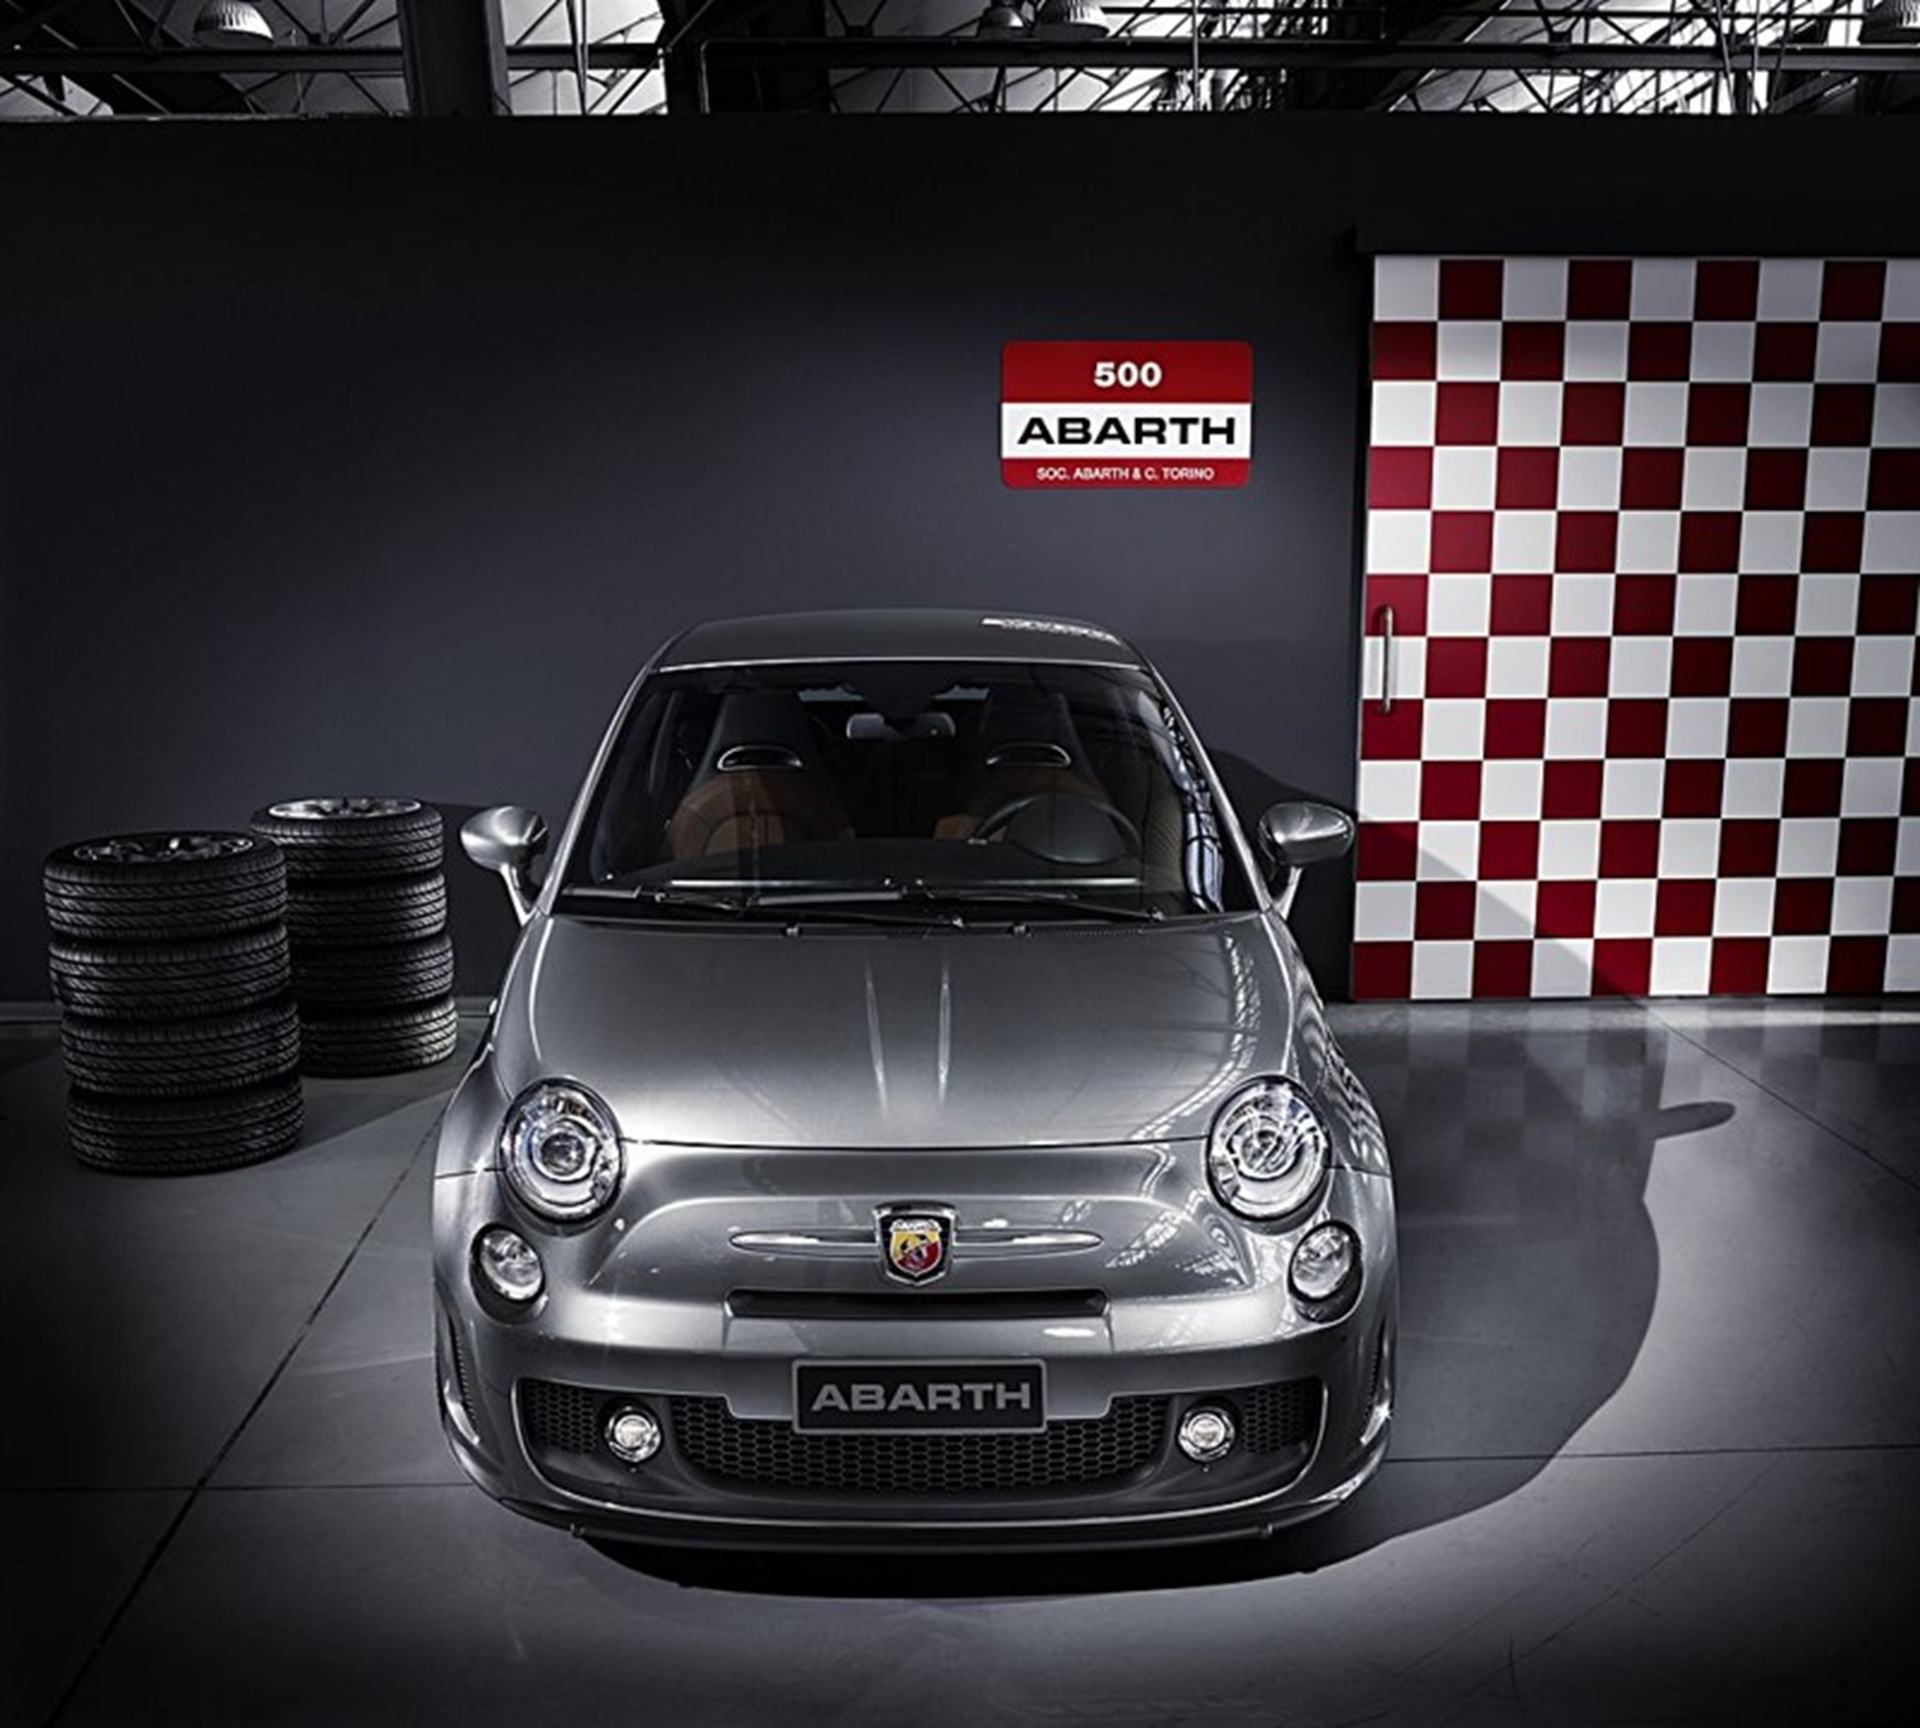 Abarth 500 2011 Full View